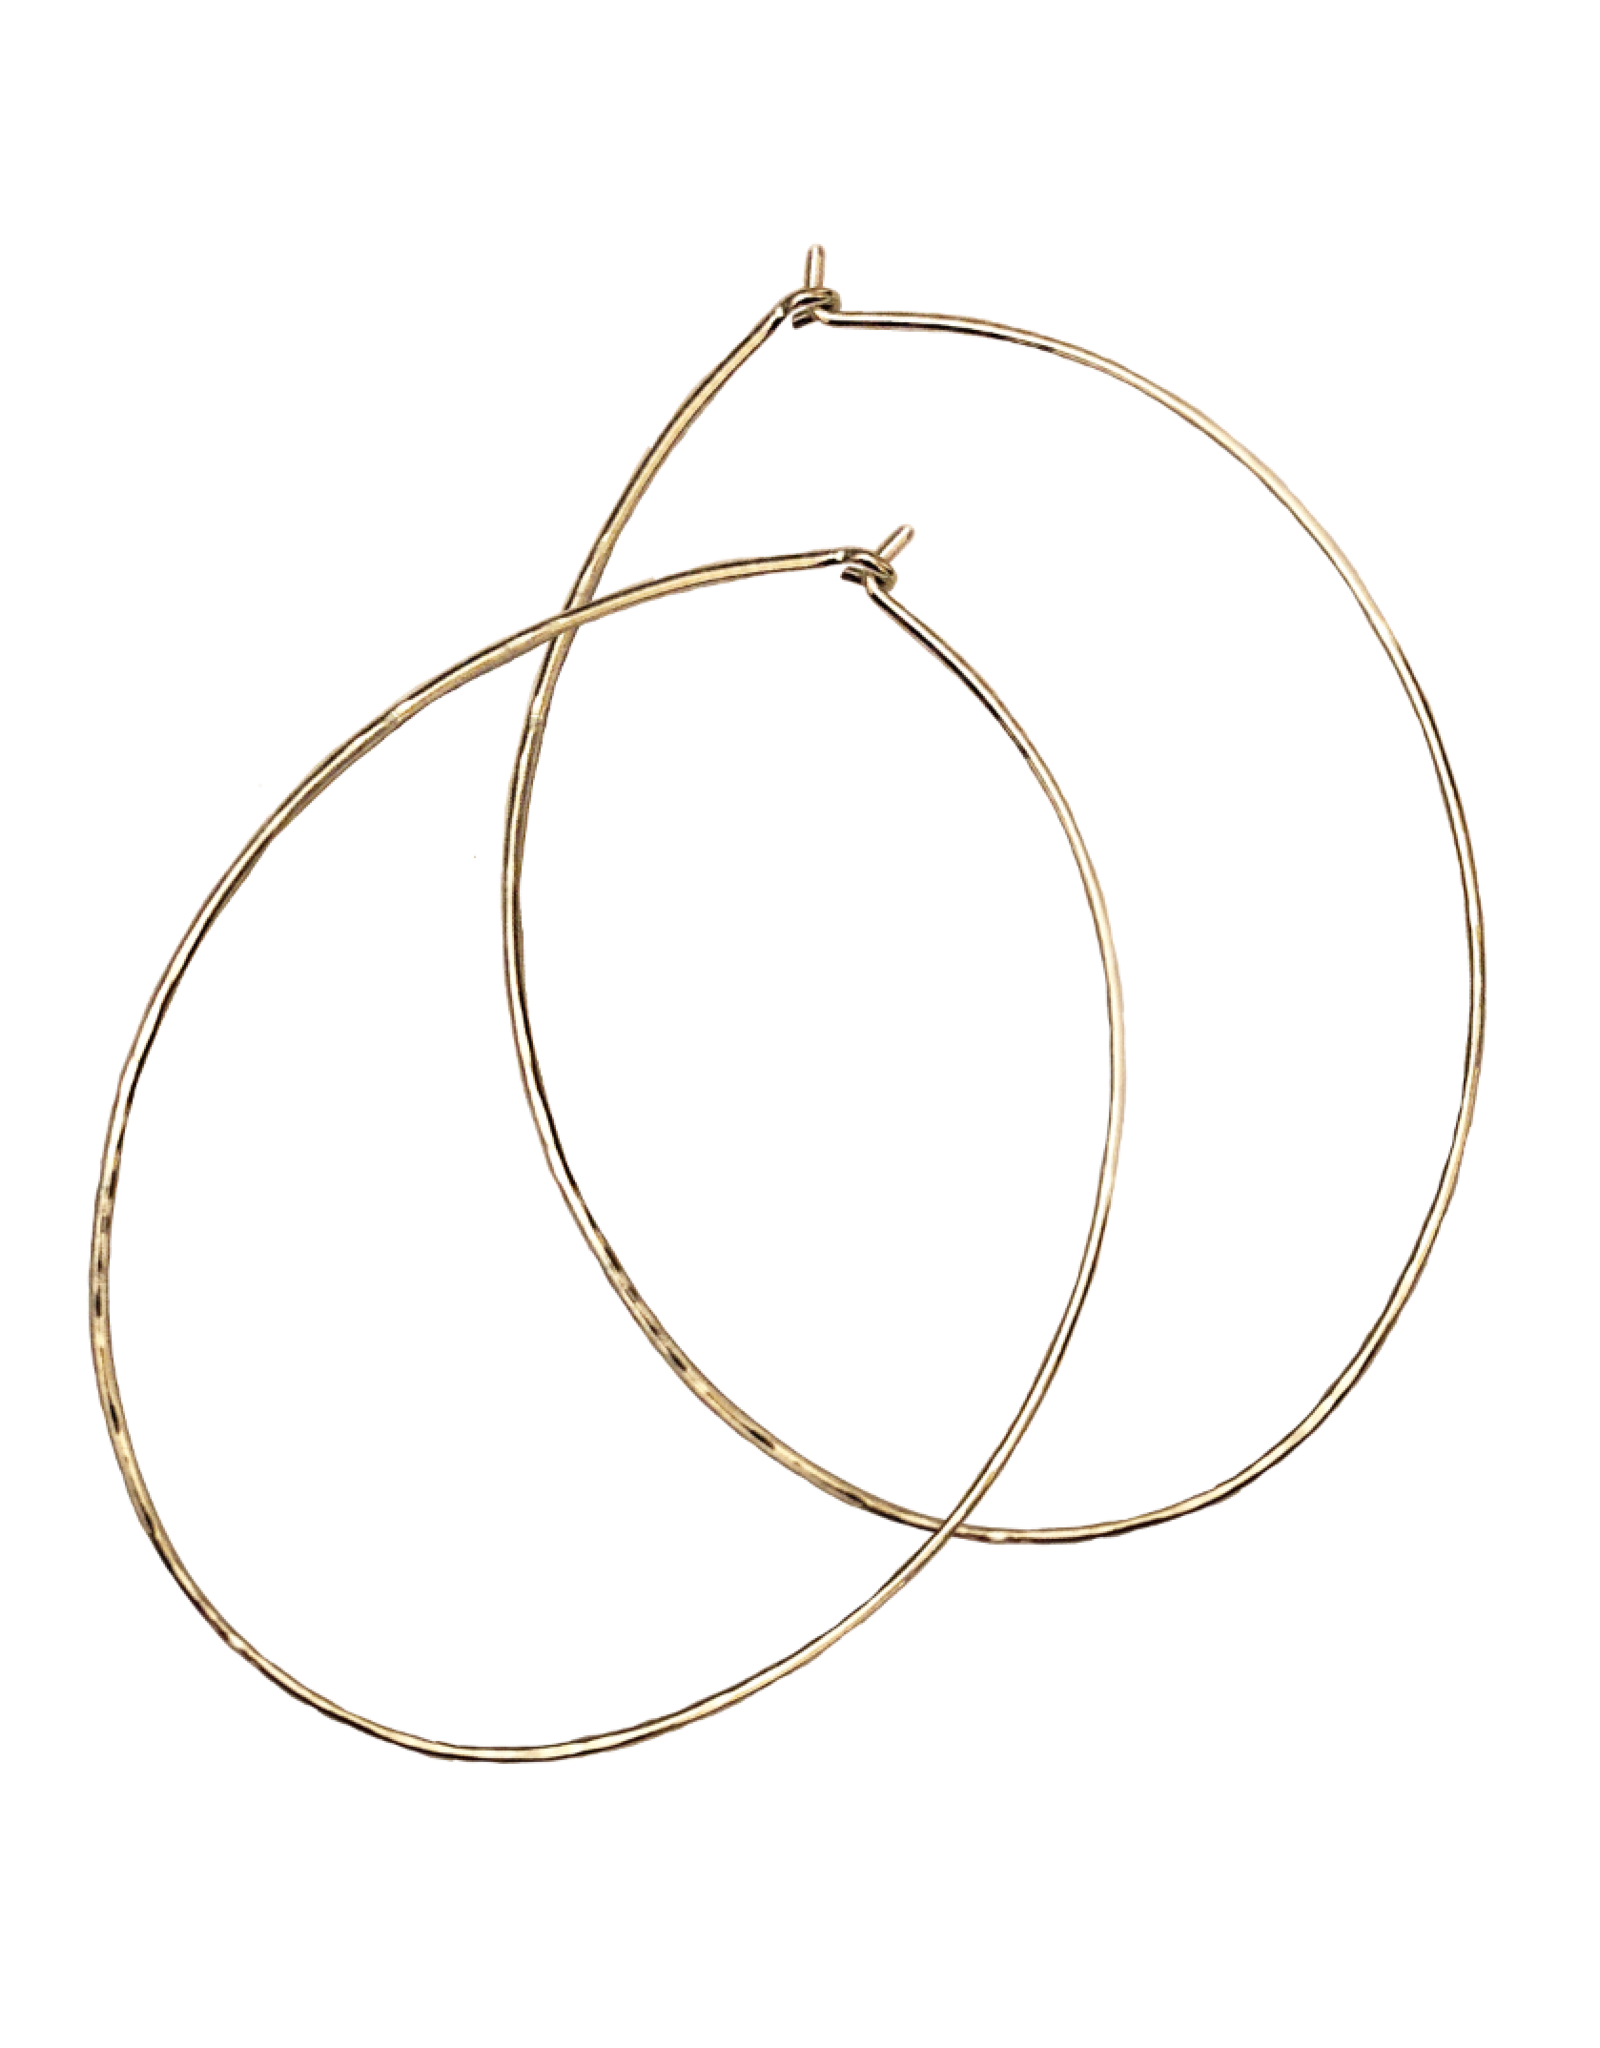 PS Gold Ovum Hoops